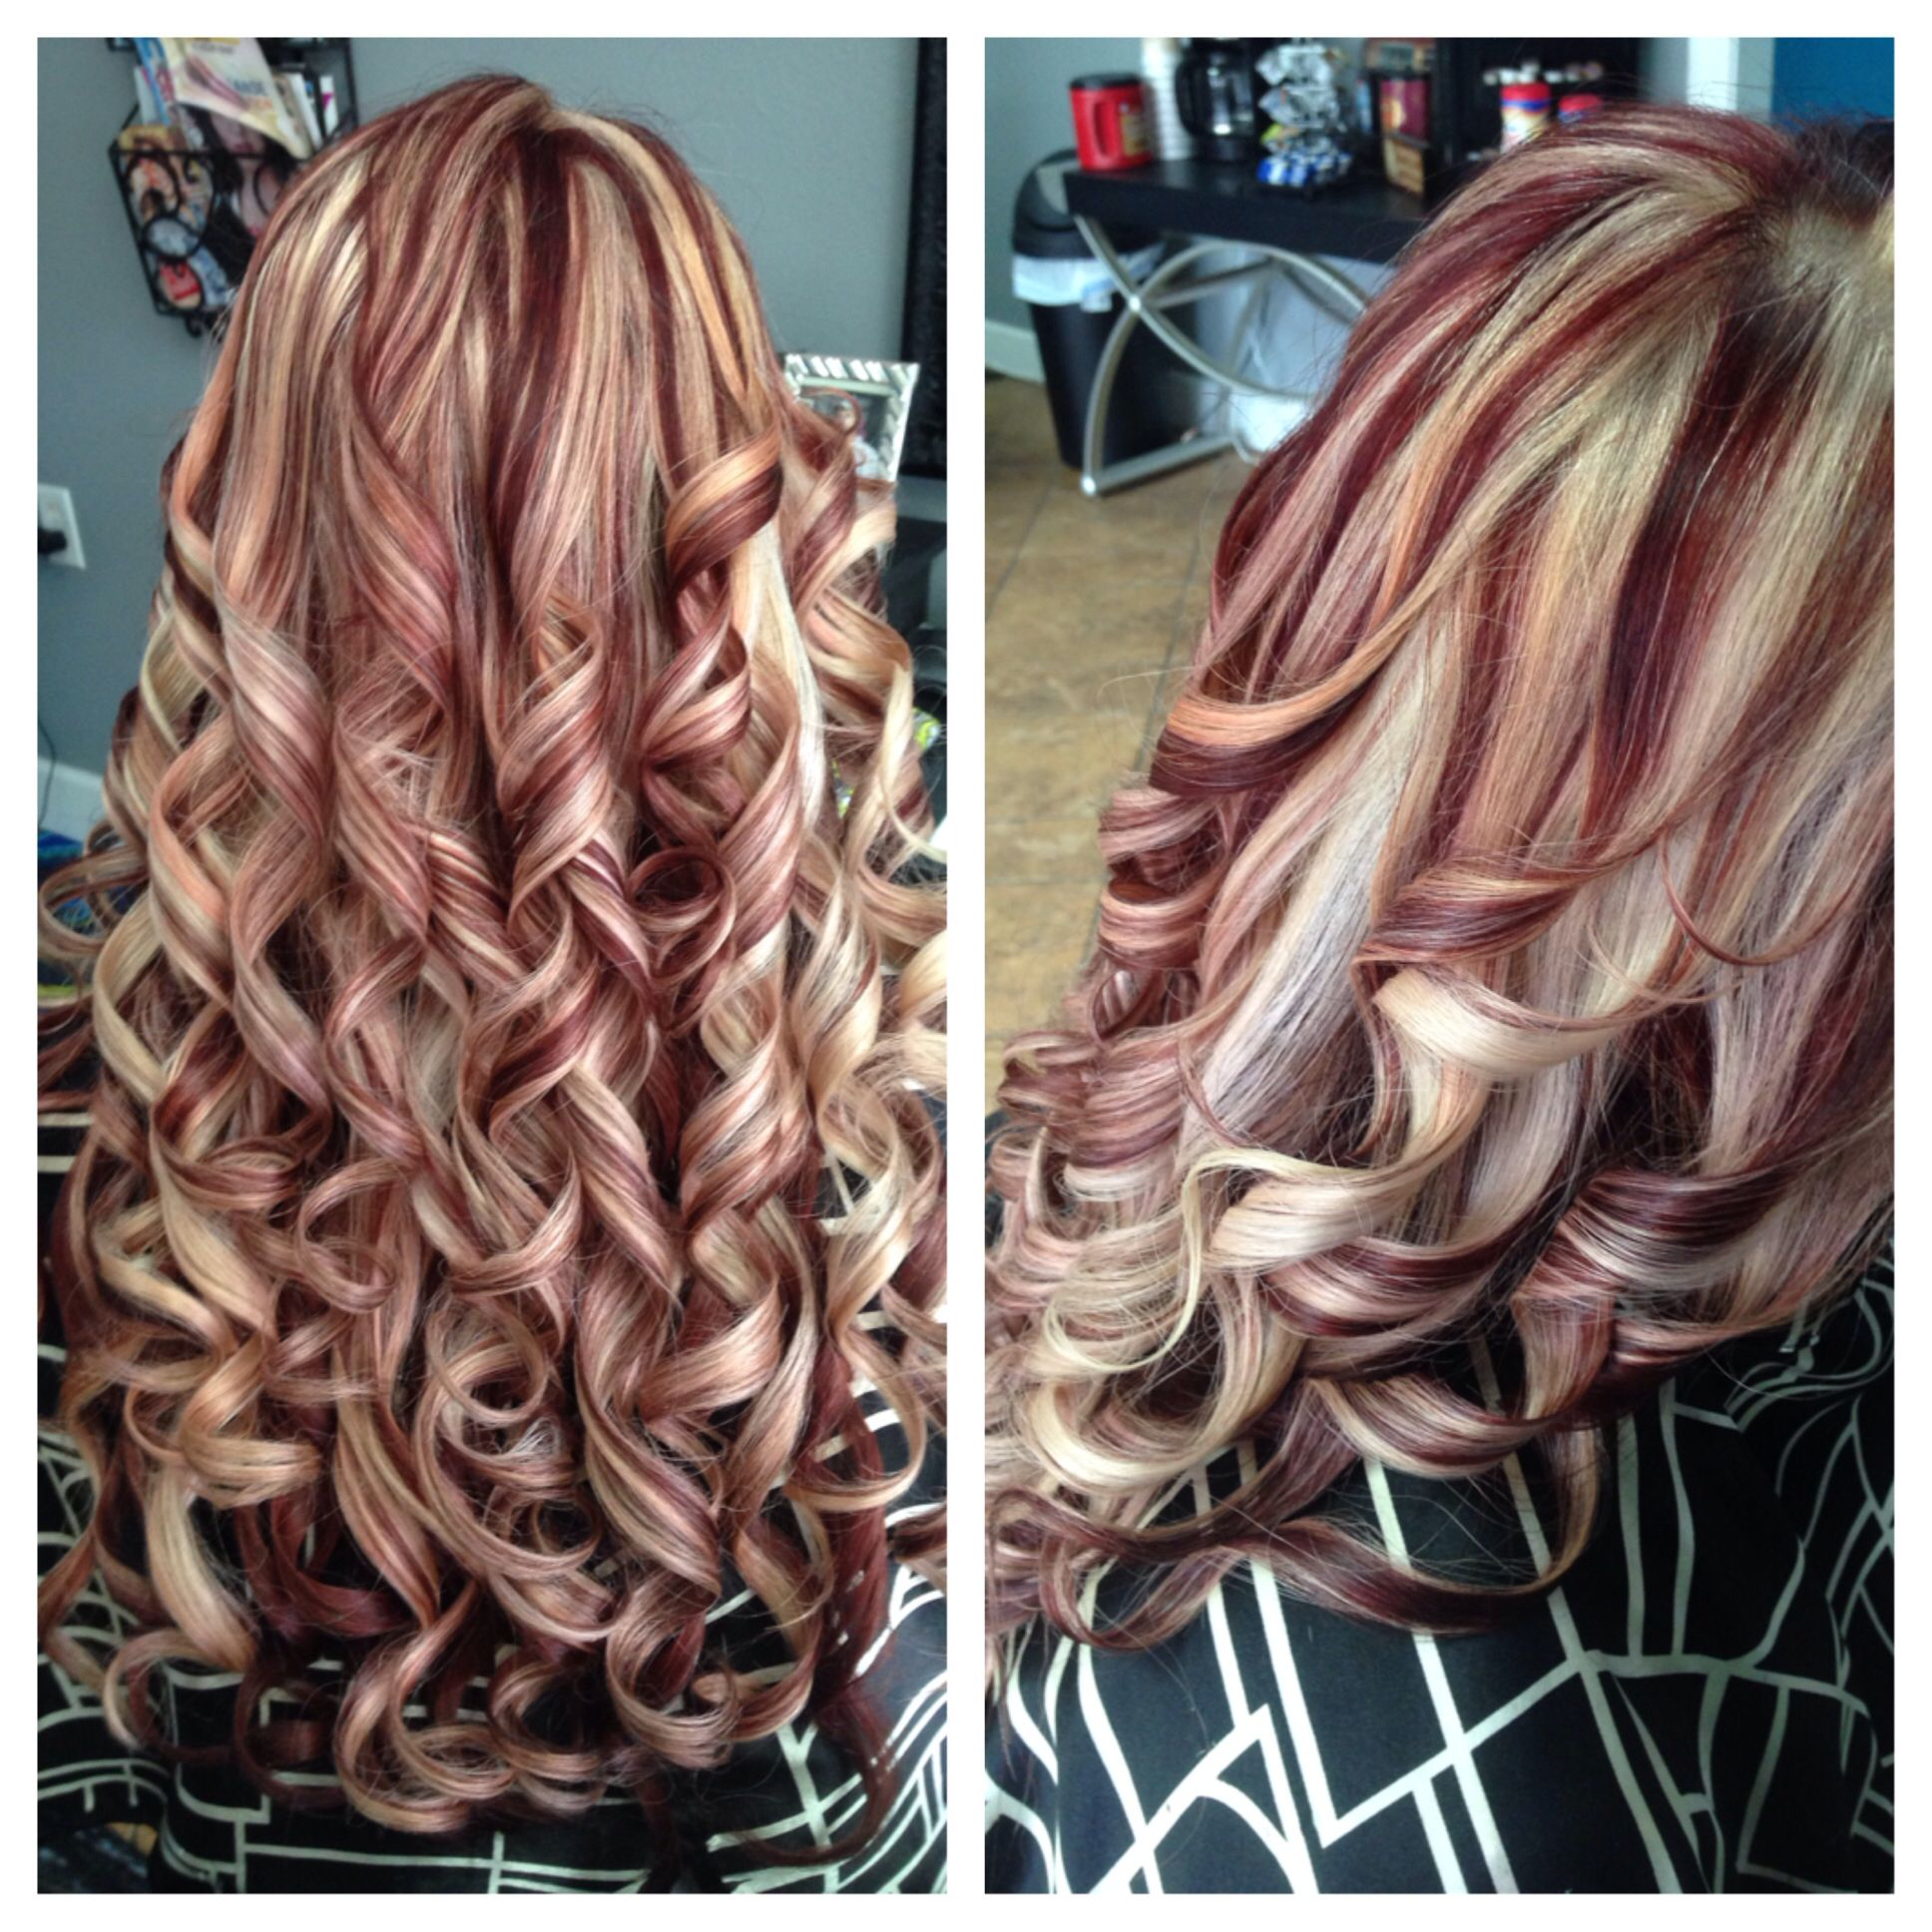 Blonde Highlights & Red Lowlights | Hair | Pinterest ...